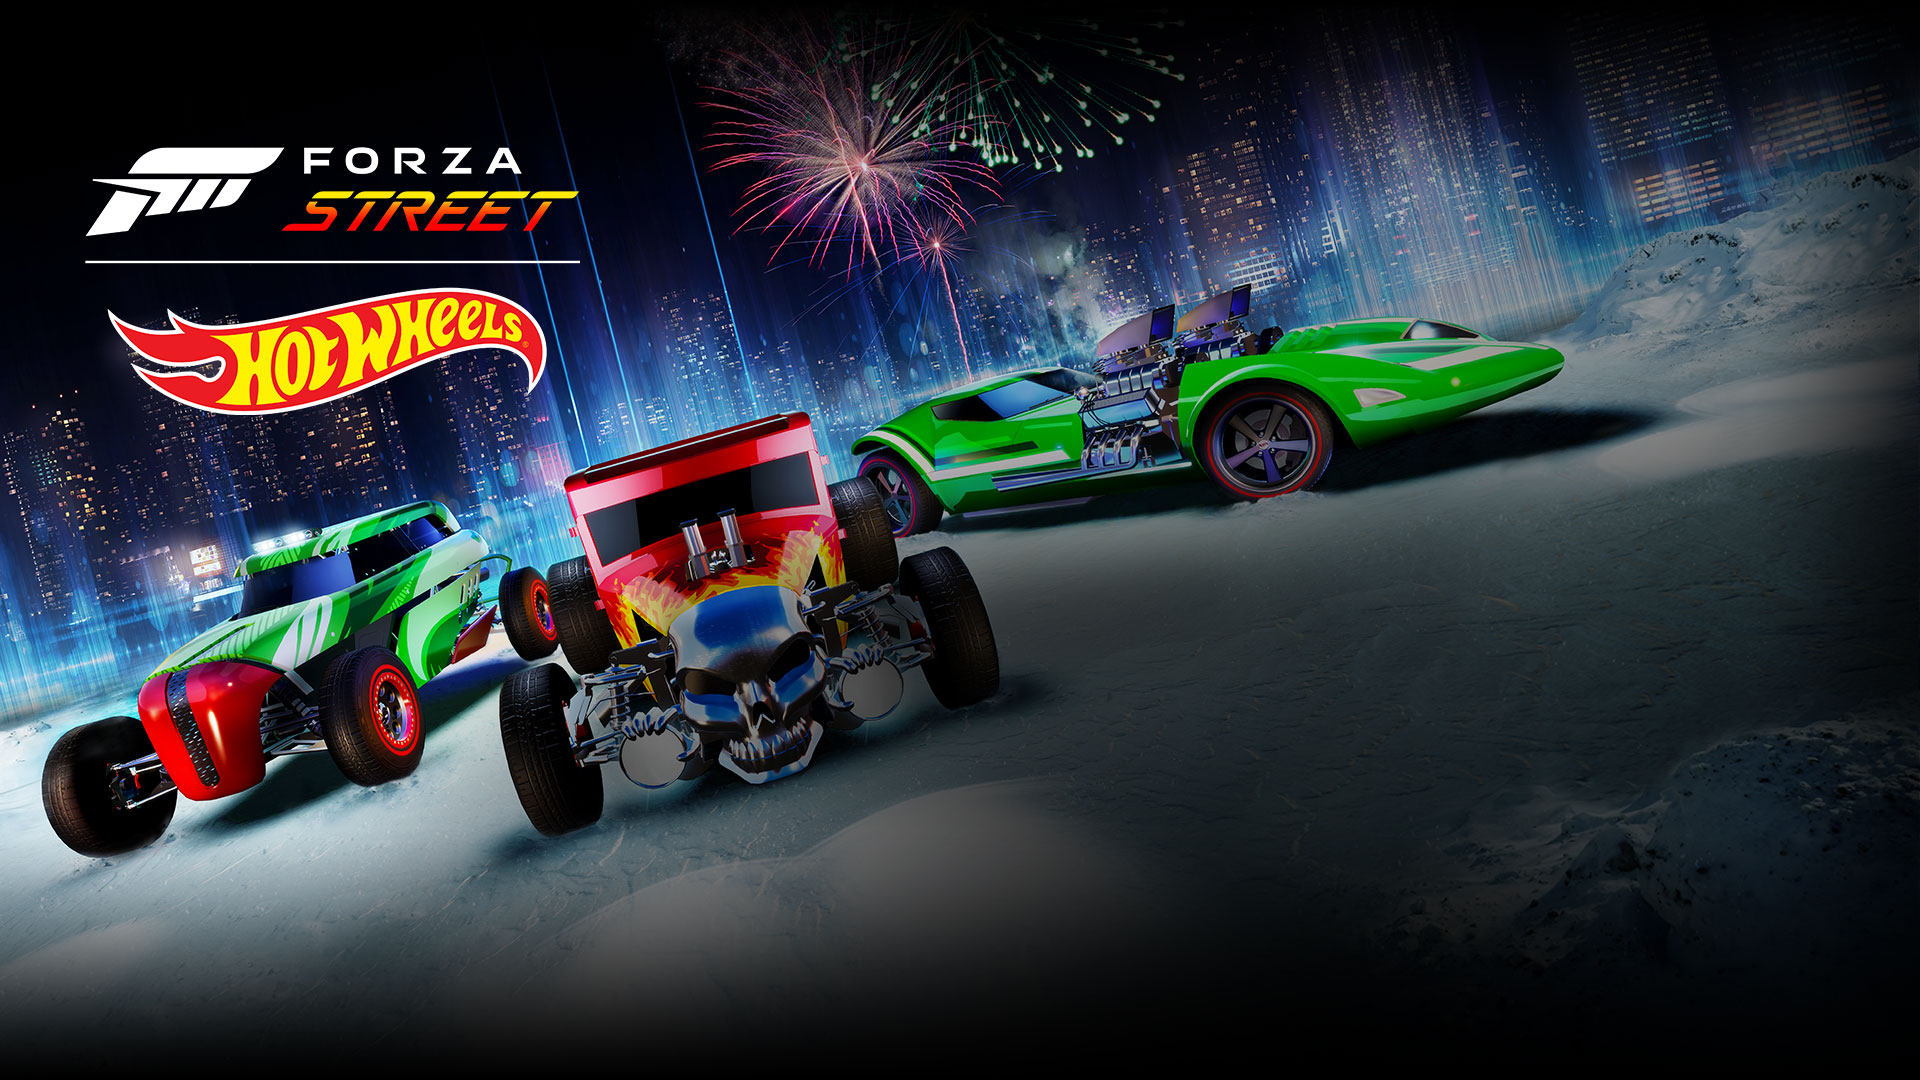 Forza Street, Hot Wheels, line-up of legendary cars in the background